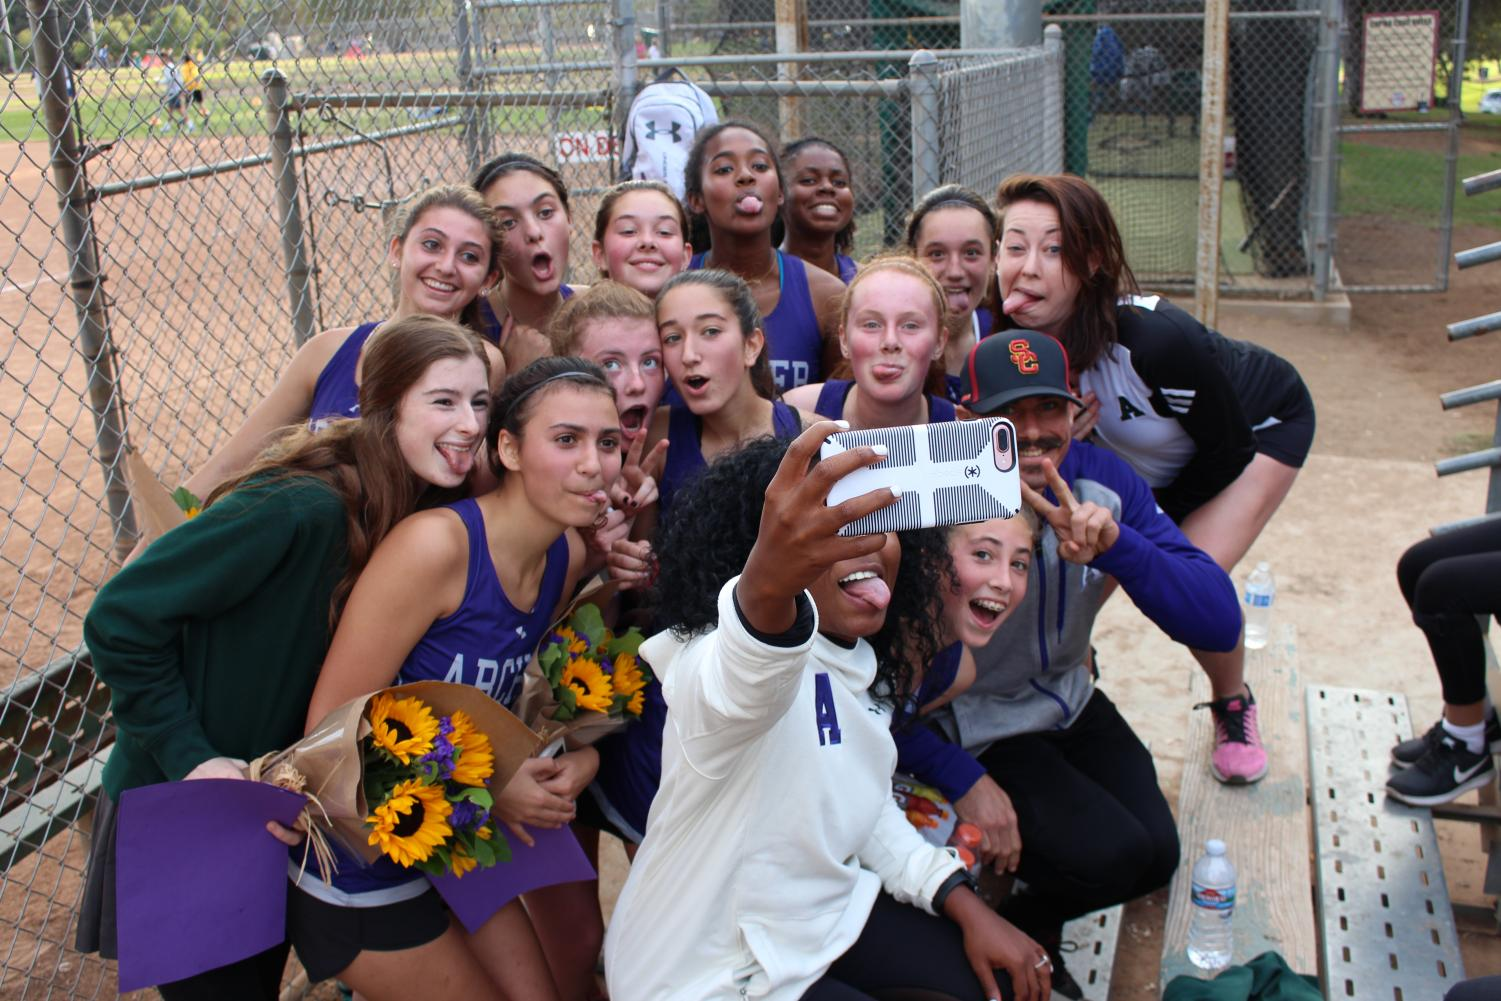 The varisty cross country team poses for a selfie with their coaches. The team celebrated Senior Night on Nov. 1 during League Finals at Cheviot Hills.